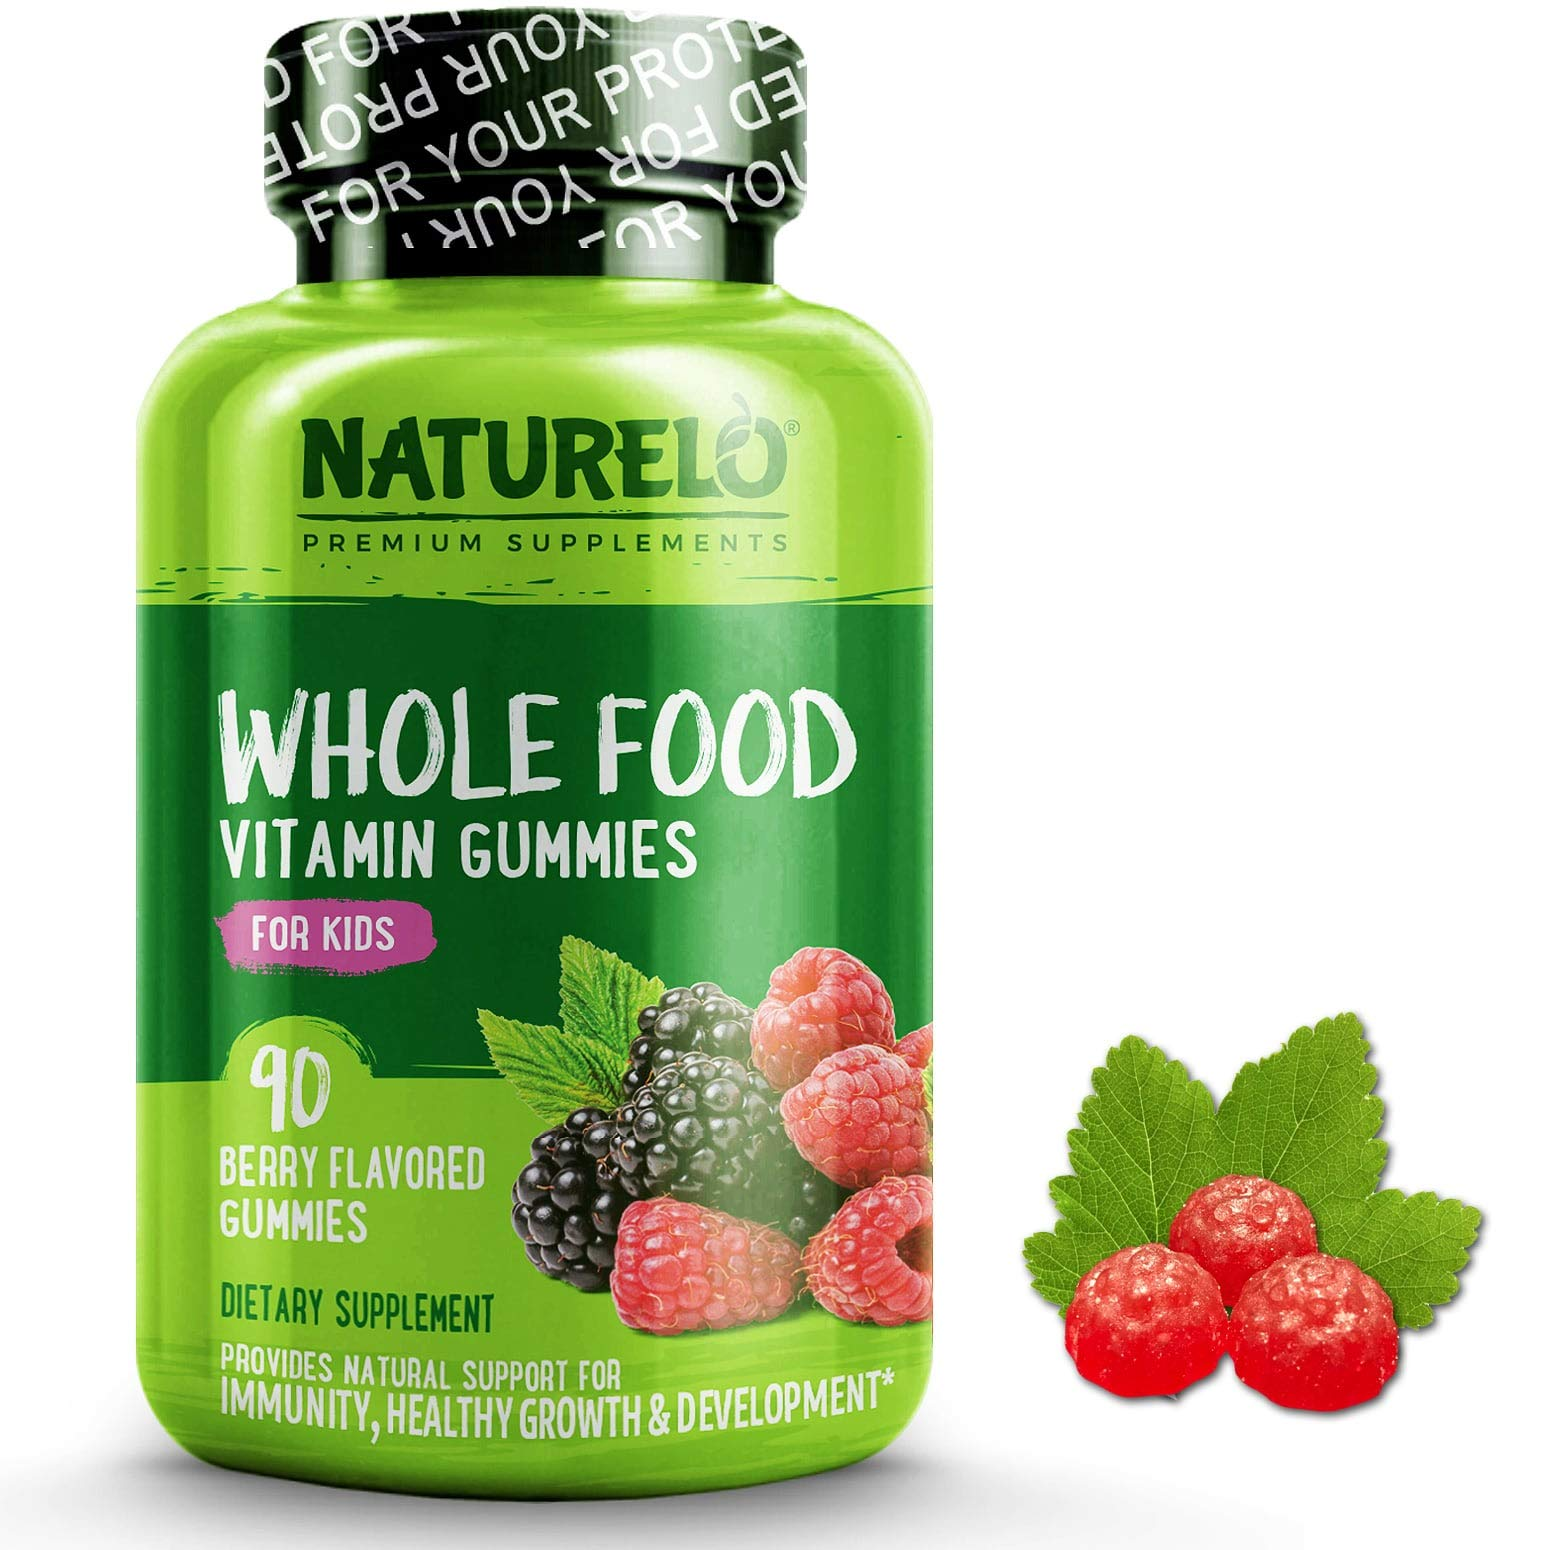 NATURELO Whole Food Vitamin Gummies for Kids - Best Chewable Gummy Multivitamin for Children - Organic Great Tasting Berry Flavor - Non-GMO - All Natural Vitamins, Minerals - 90 Vegan Gummies by NATURELO